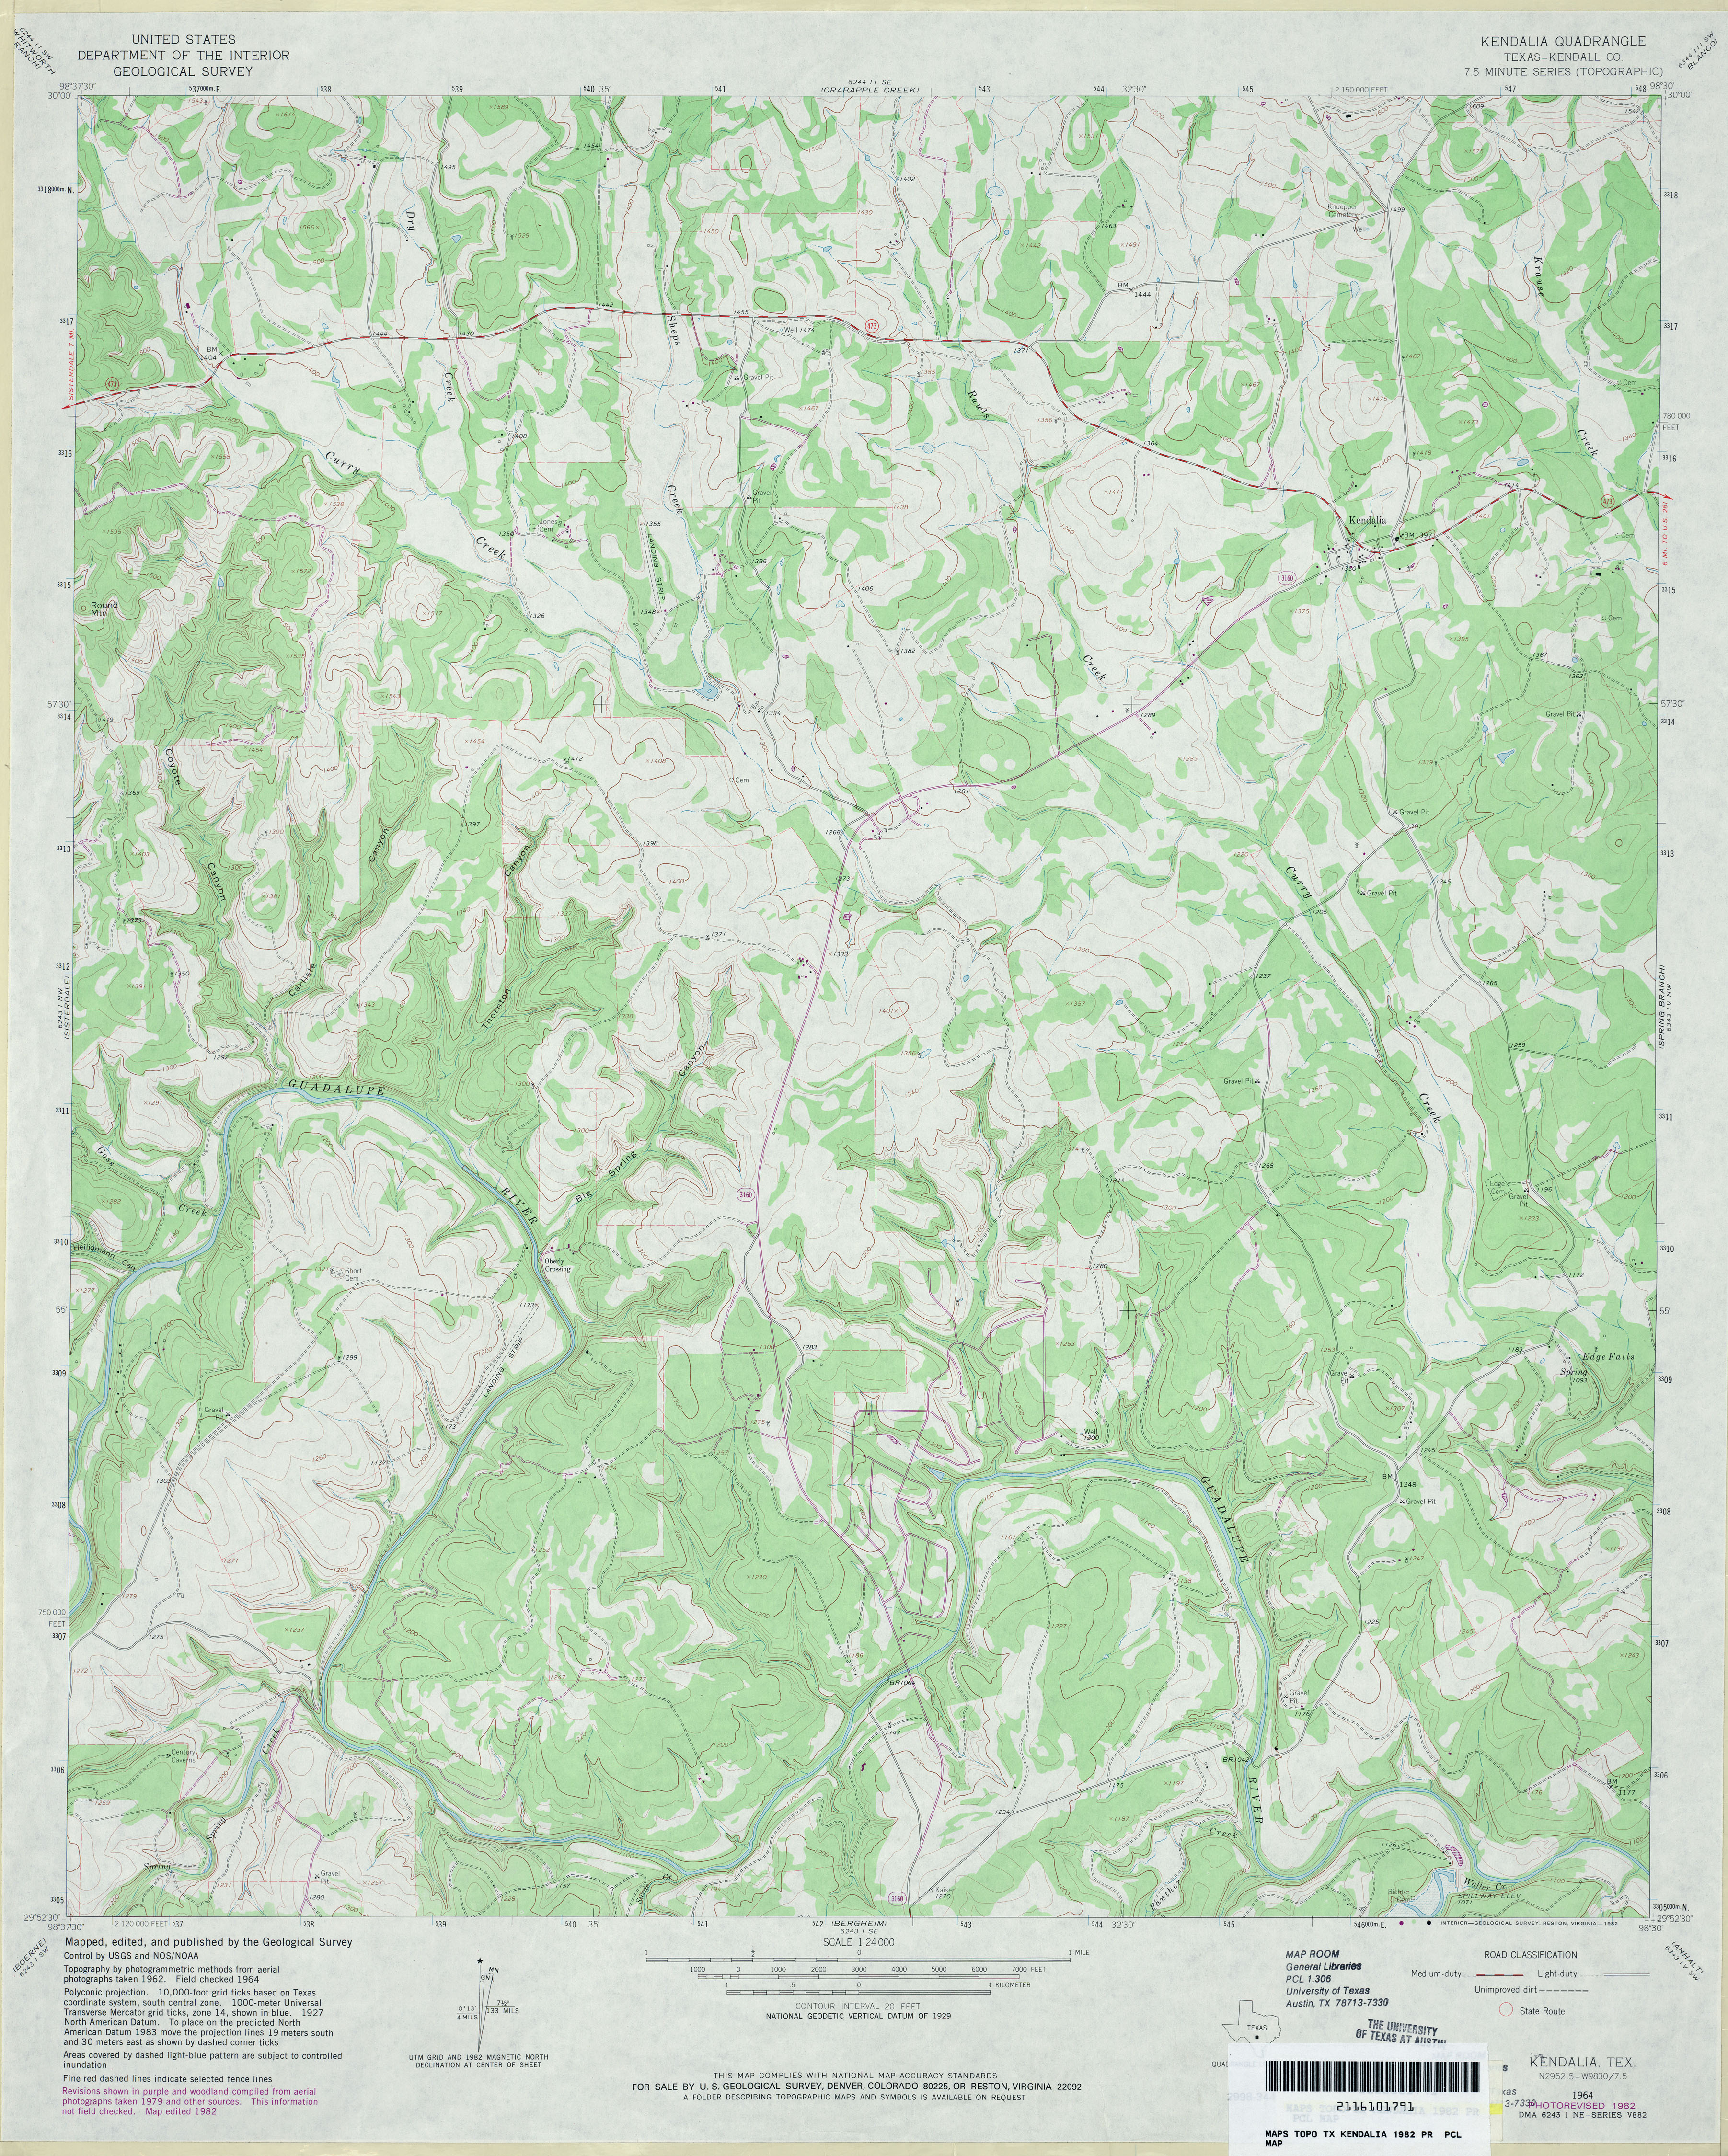 Kyle Tx Zip Code Map.Texas Topographic Maps Perry Castaneda Map Collection Ut Library